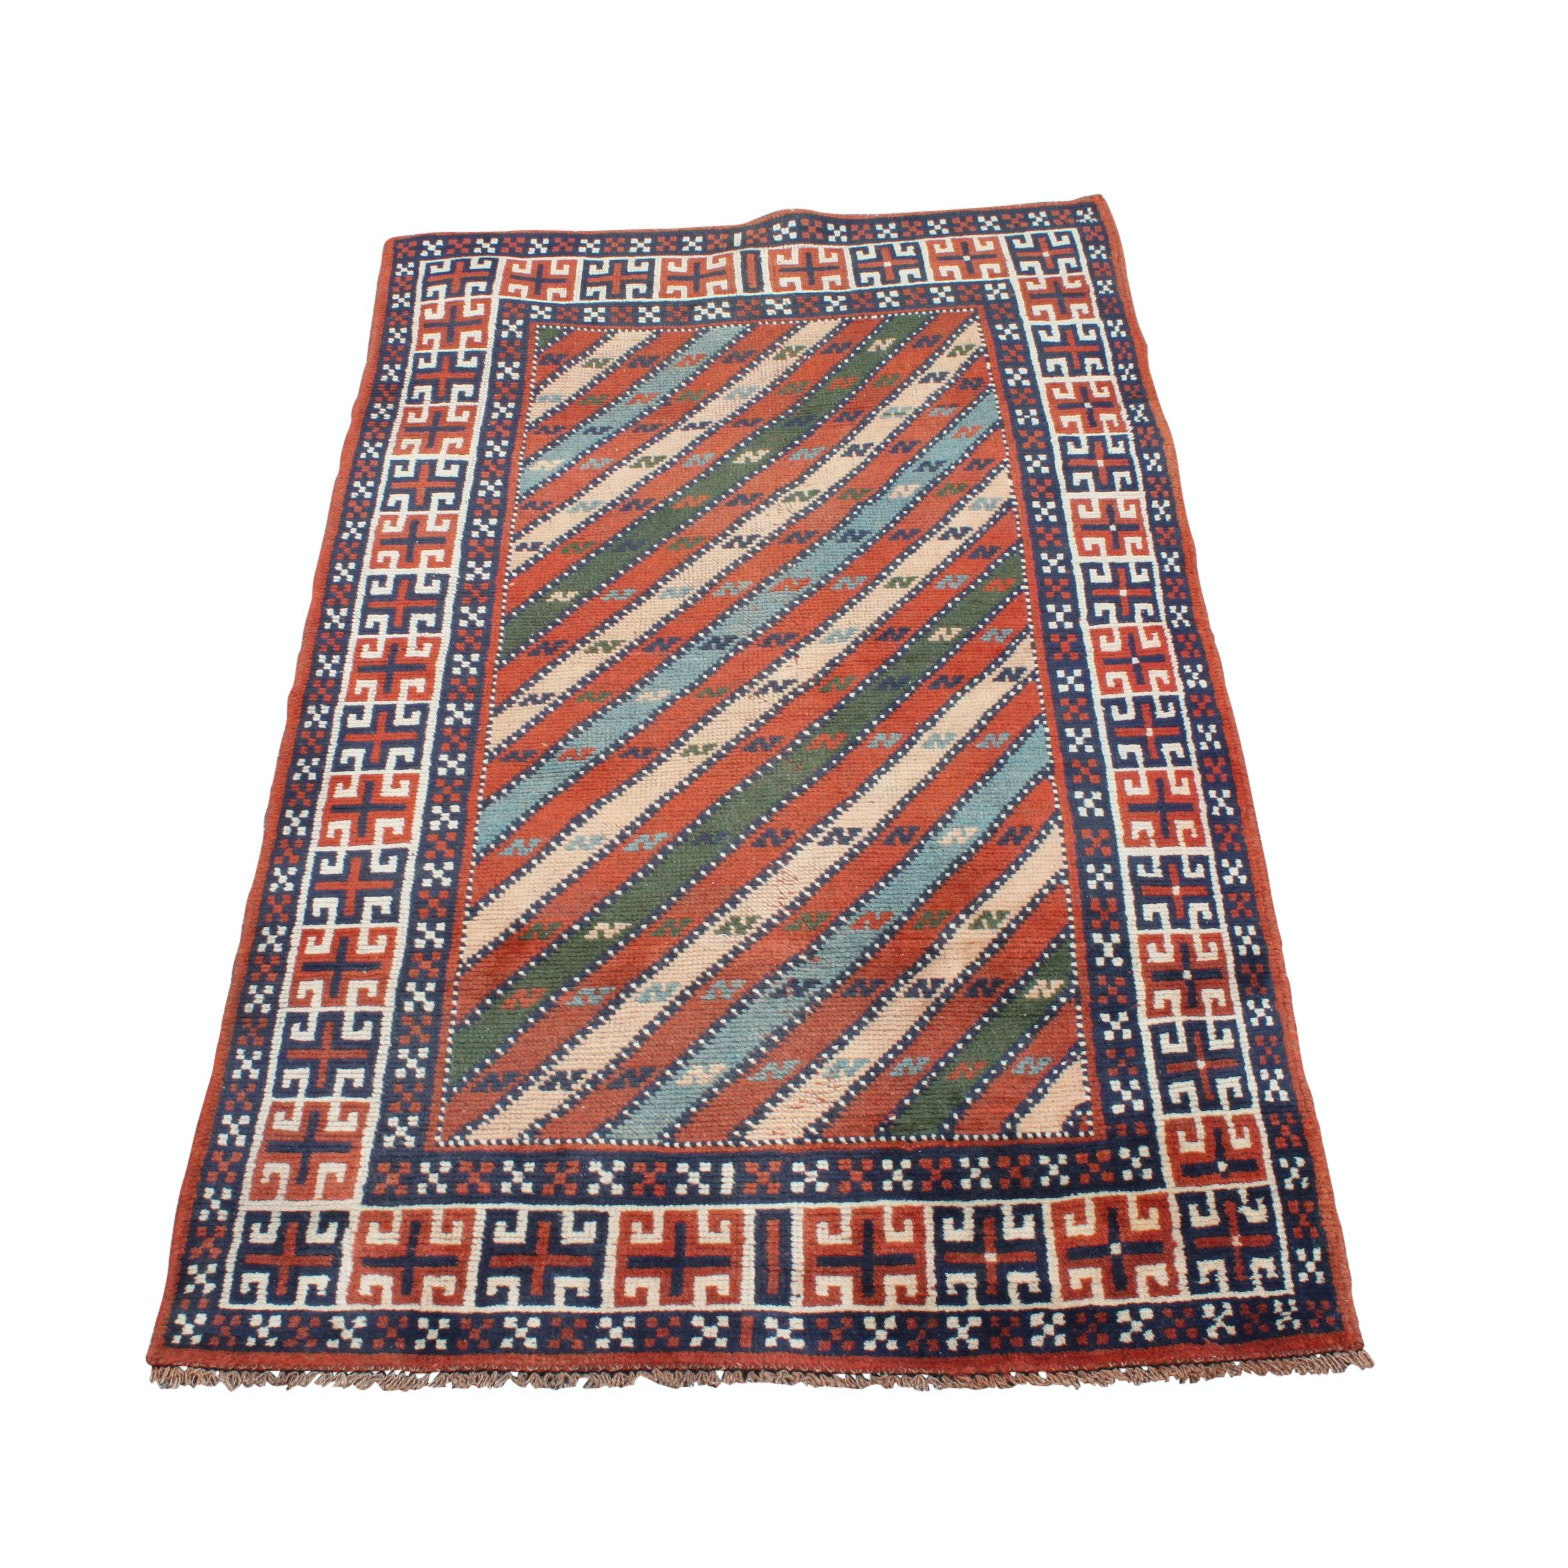 Vintage Hand-Knotted Persian Qashqai Wool Are Rug